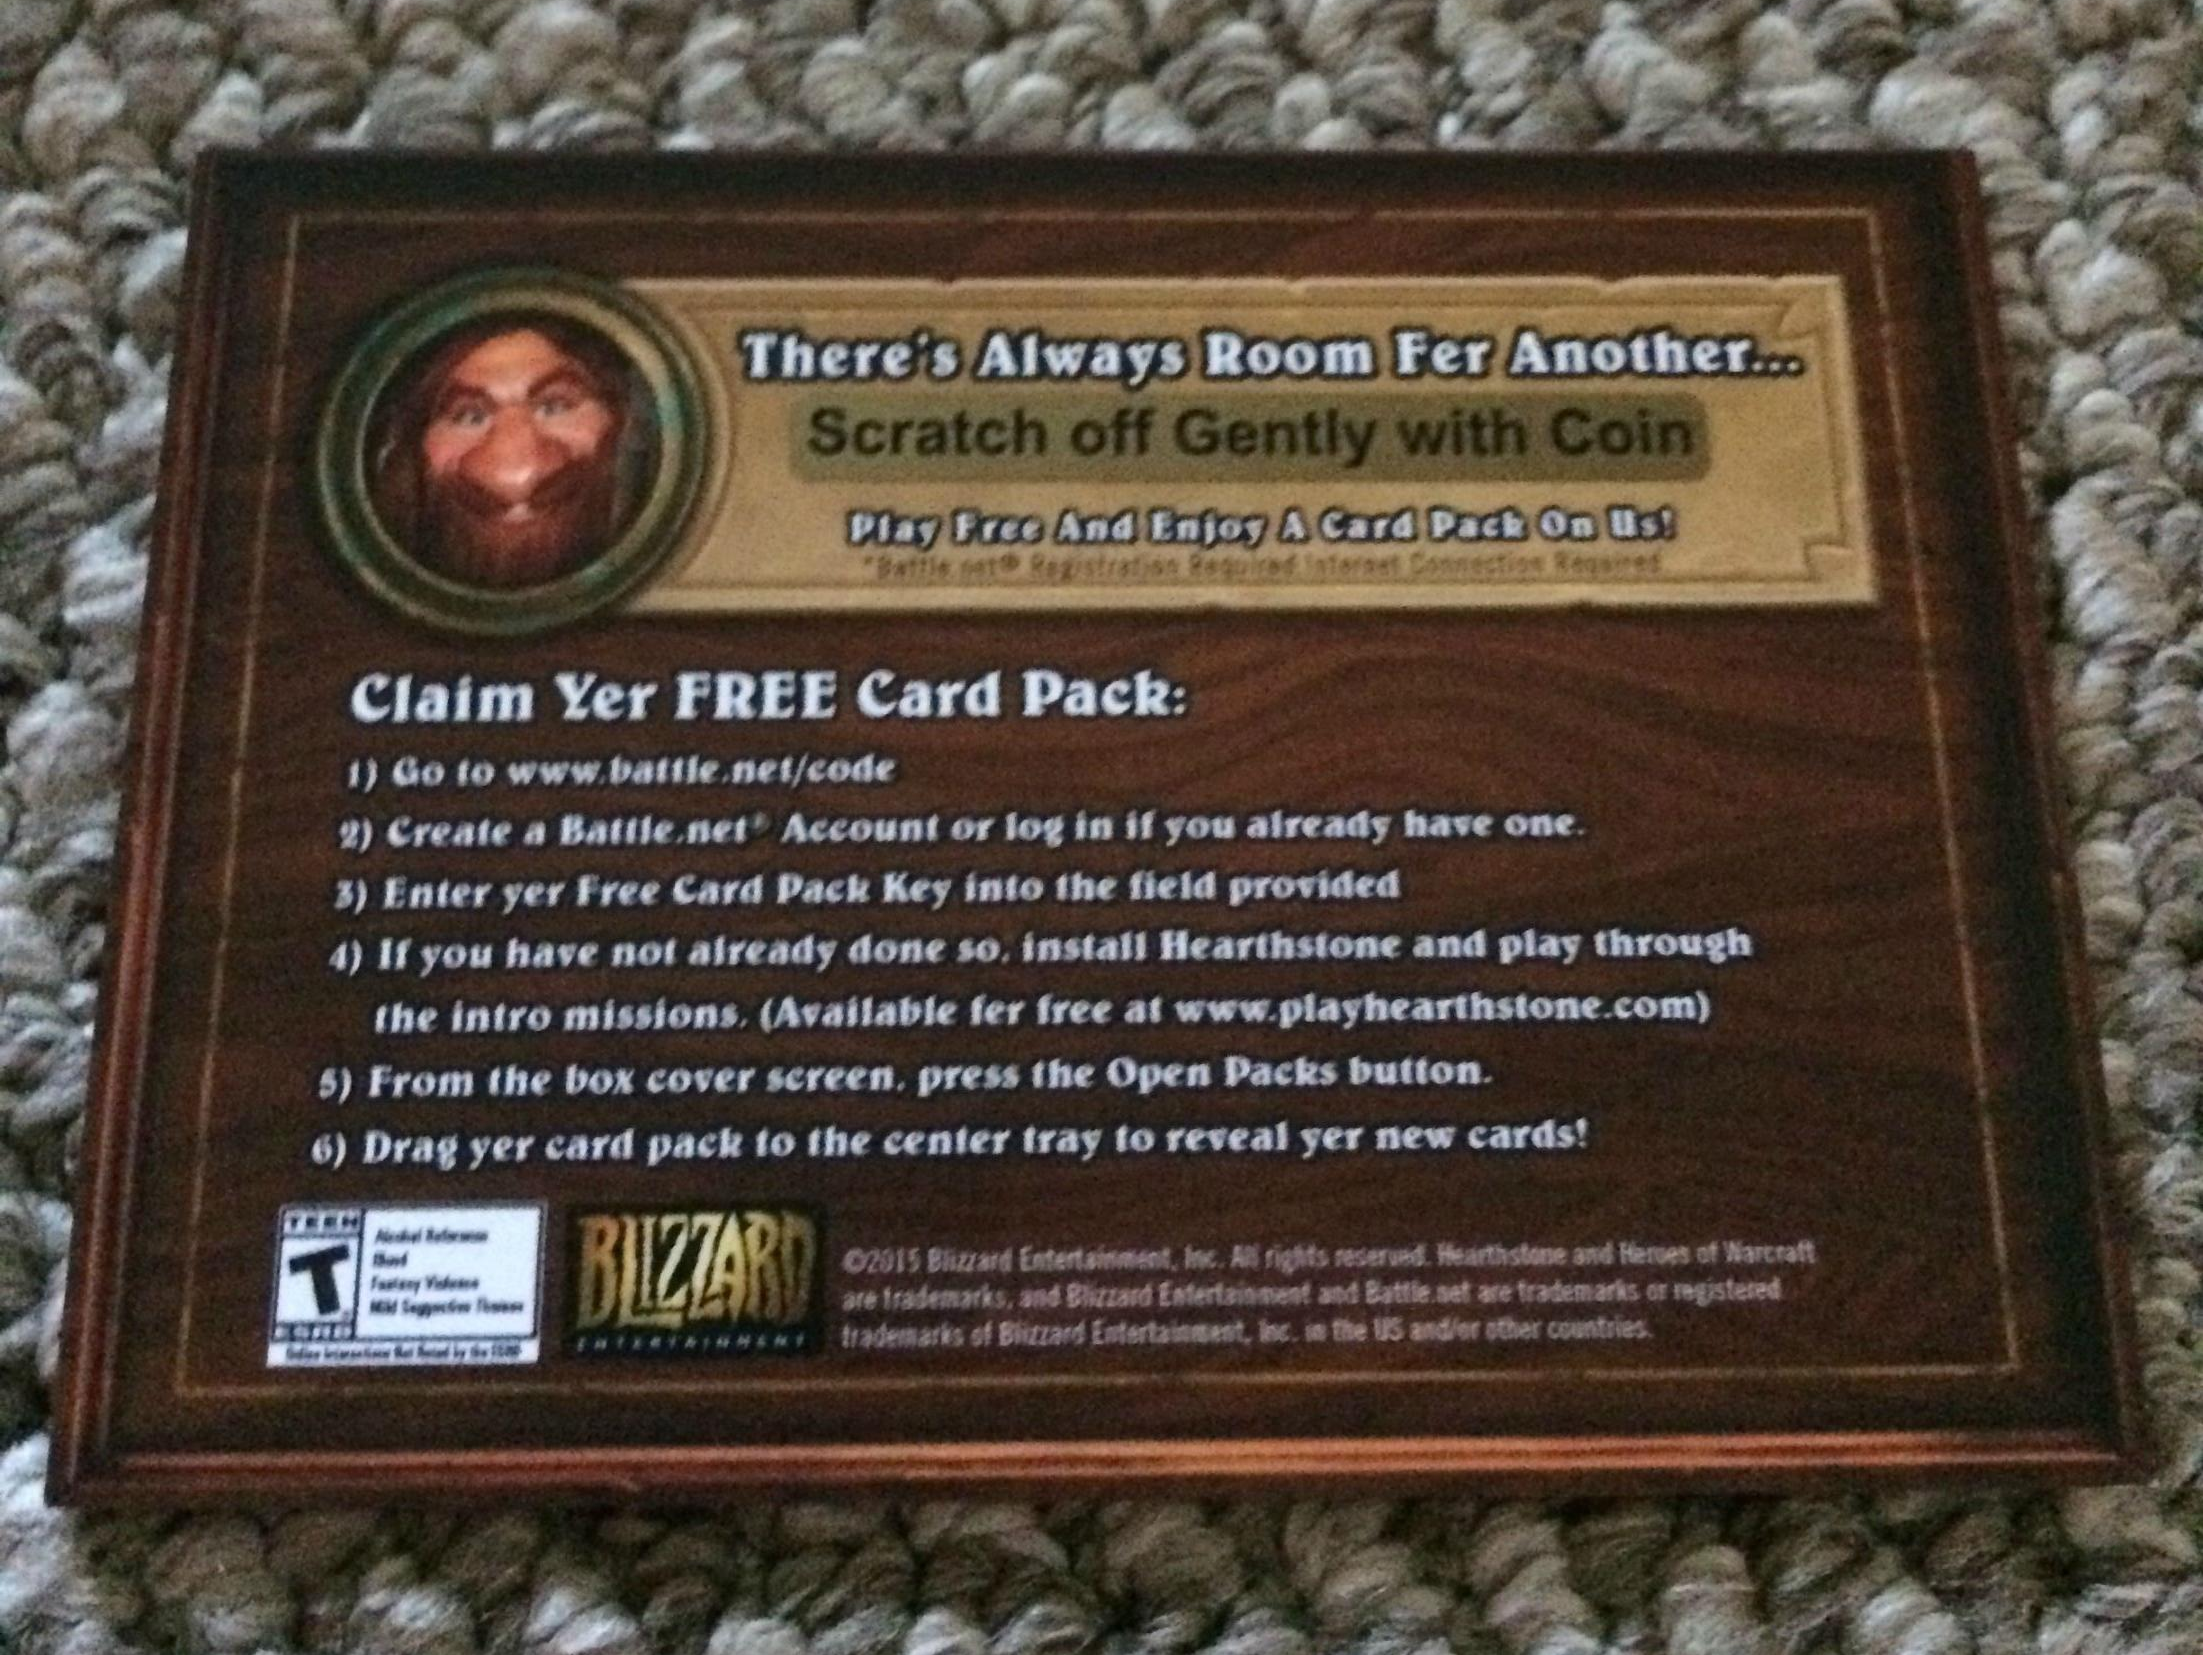 Hearthstone September Loot Crate Items - Free Card Pack! - News ...